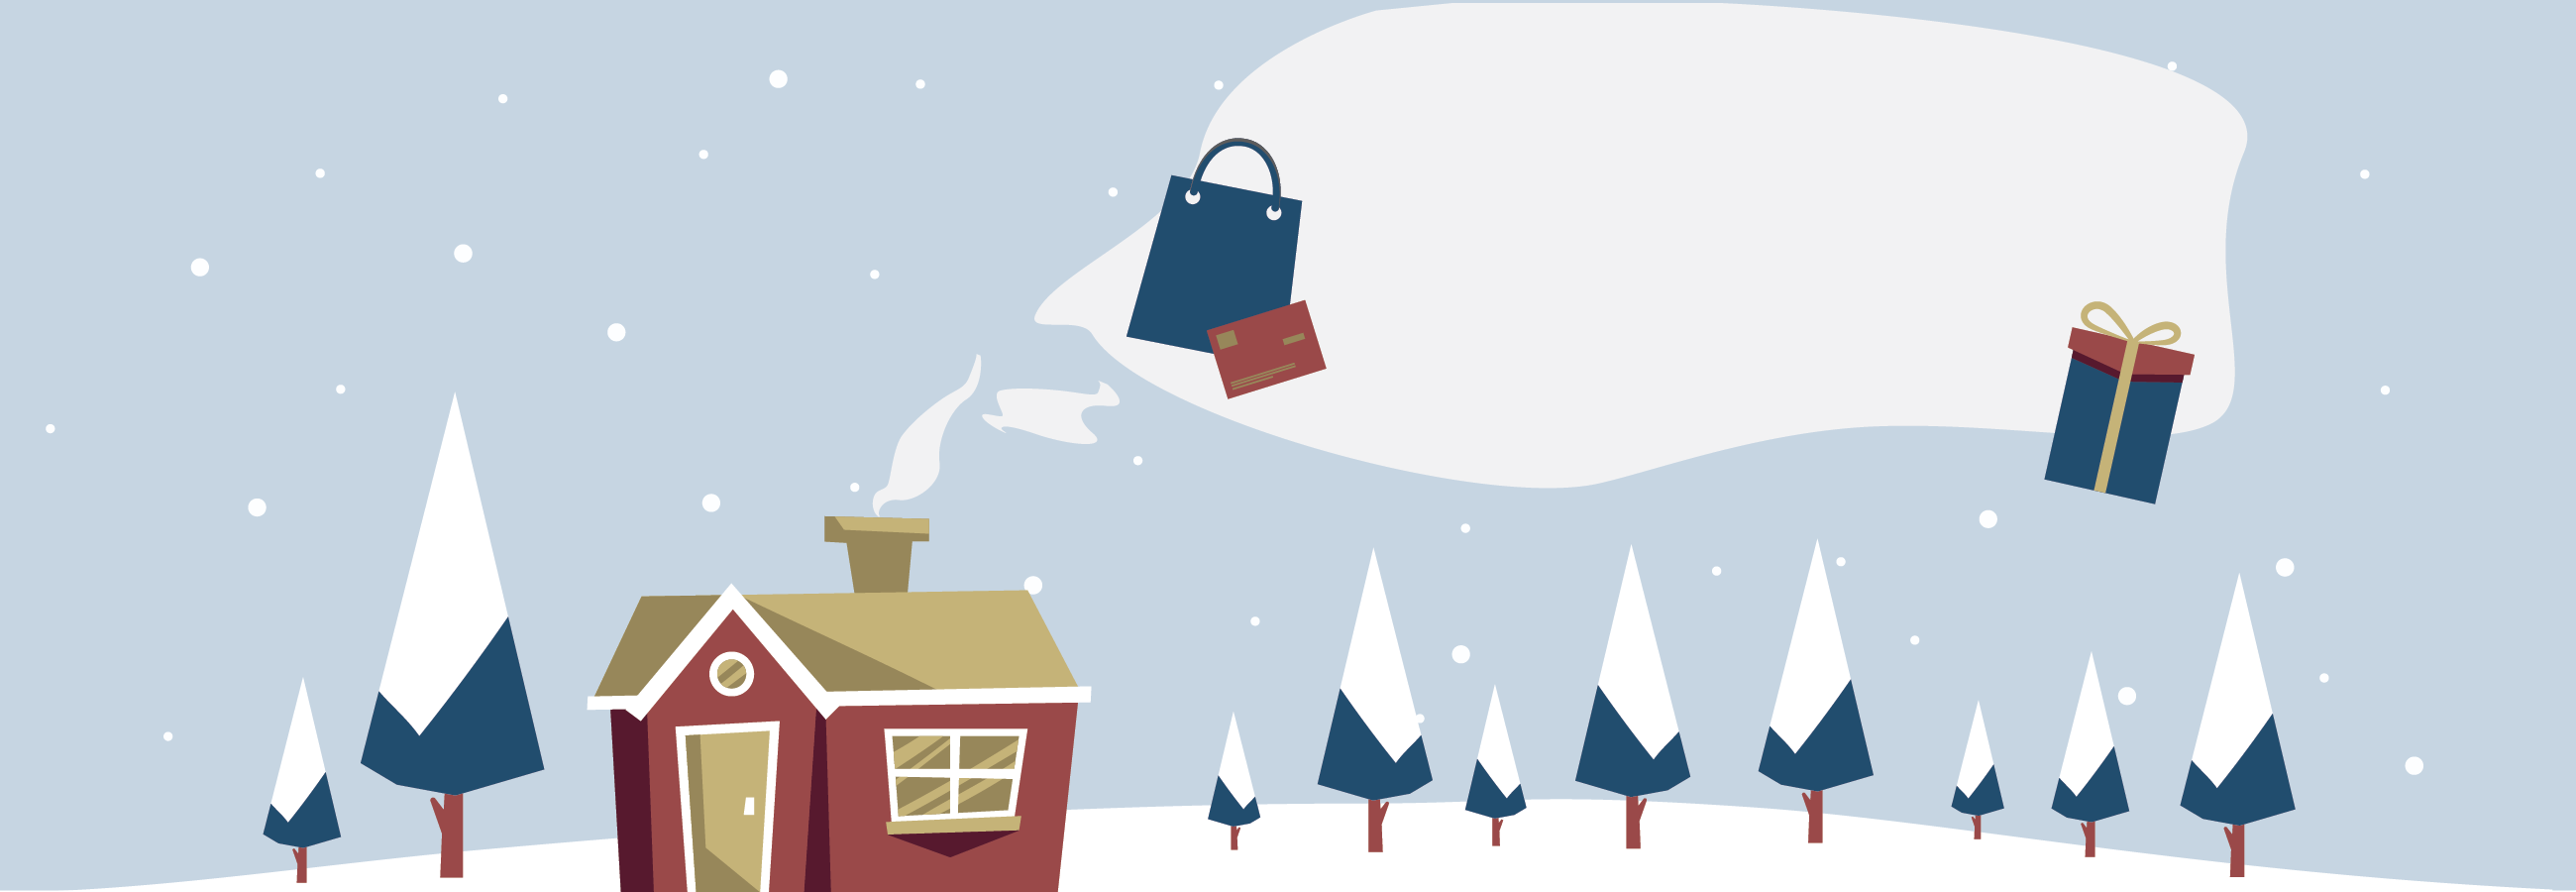 How to Drive Holiday Shoppers Through the Roof